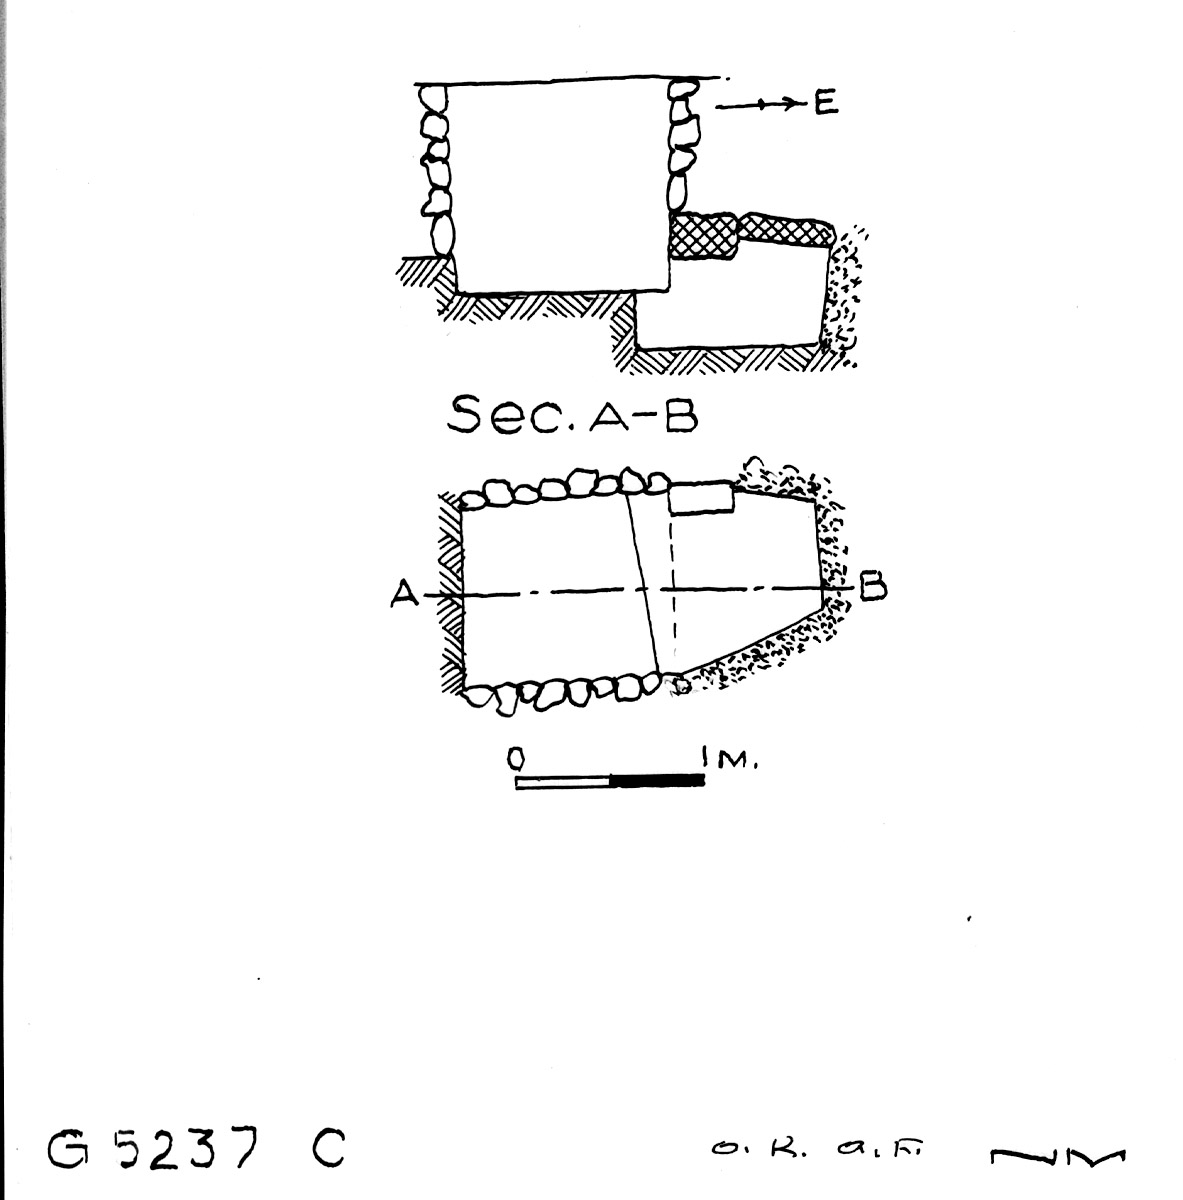 Maps and plans: G 5237, Shaft C